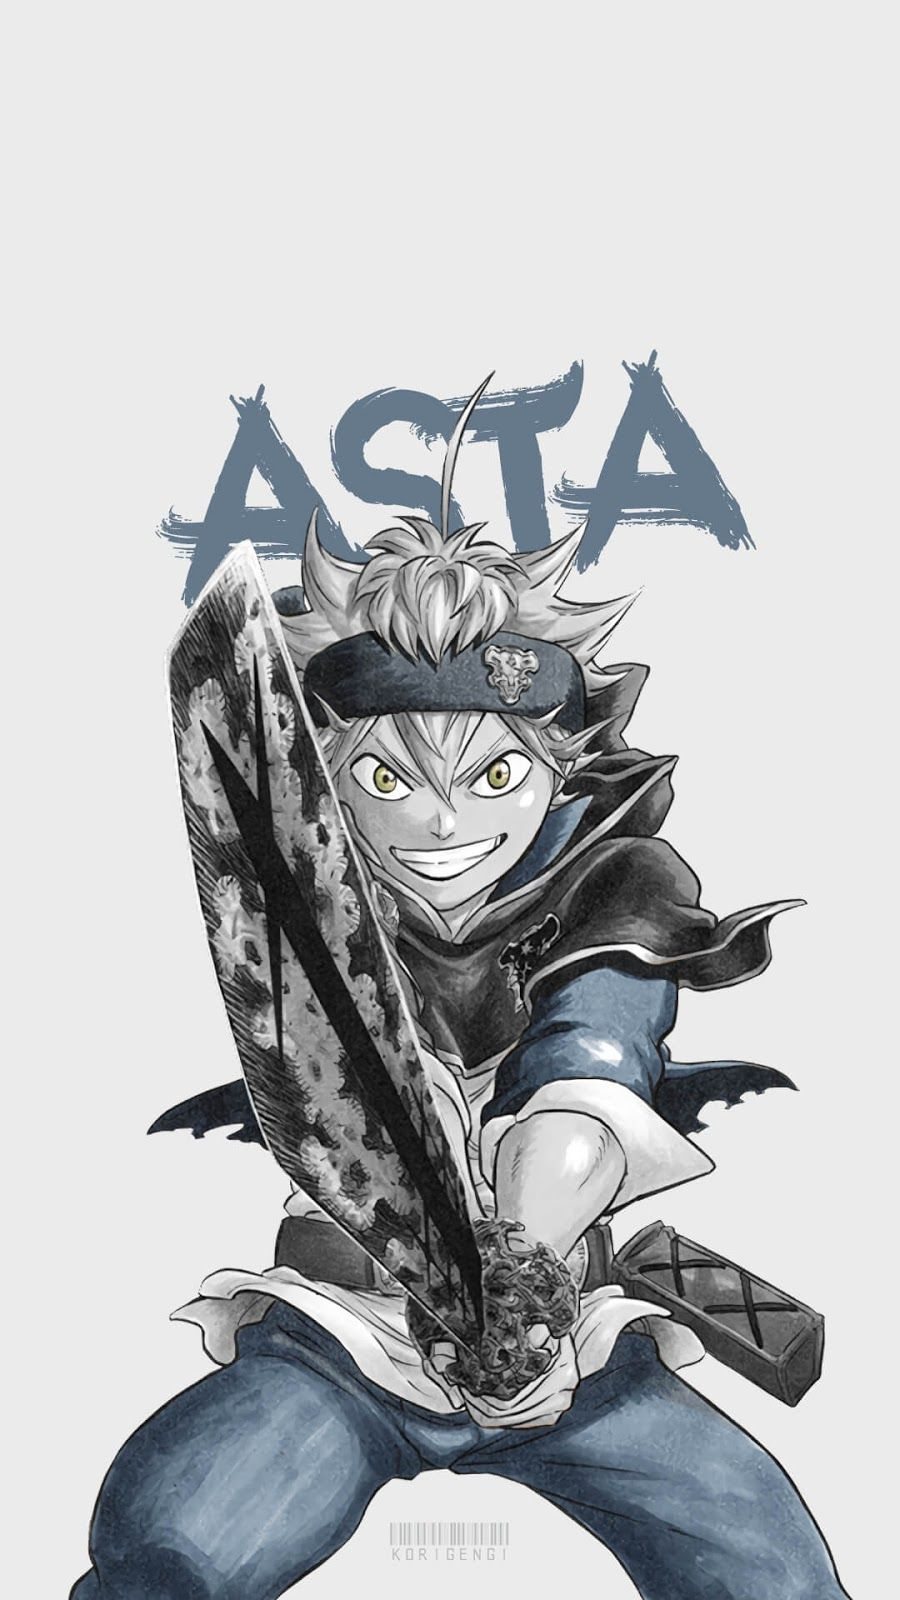 Make your device cooler and more beautiful. Asta Black Clover Wallpapers - Top Free Asta Black Clover ...